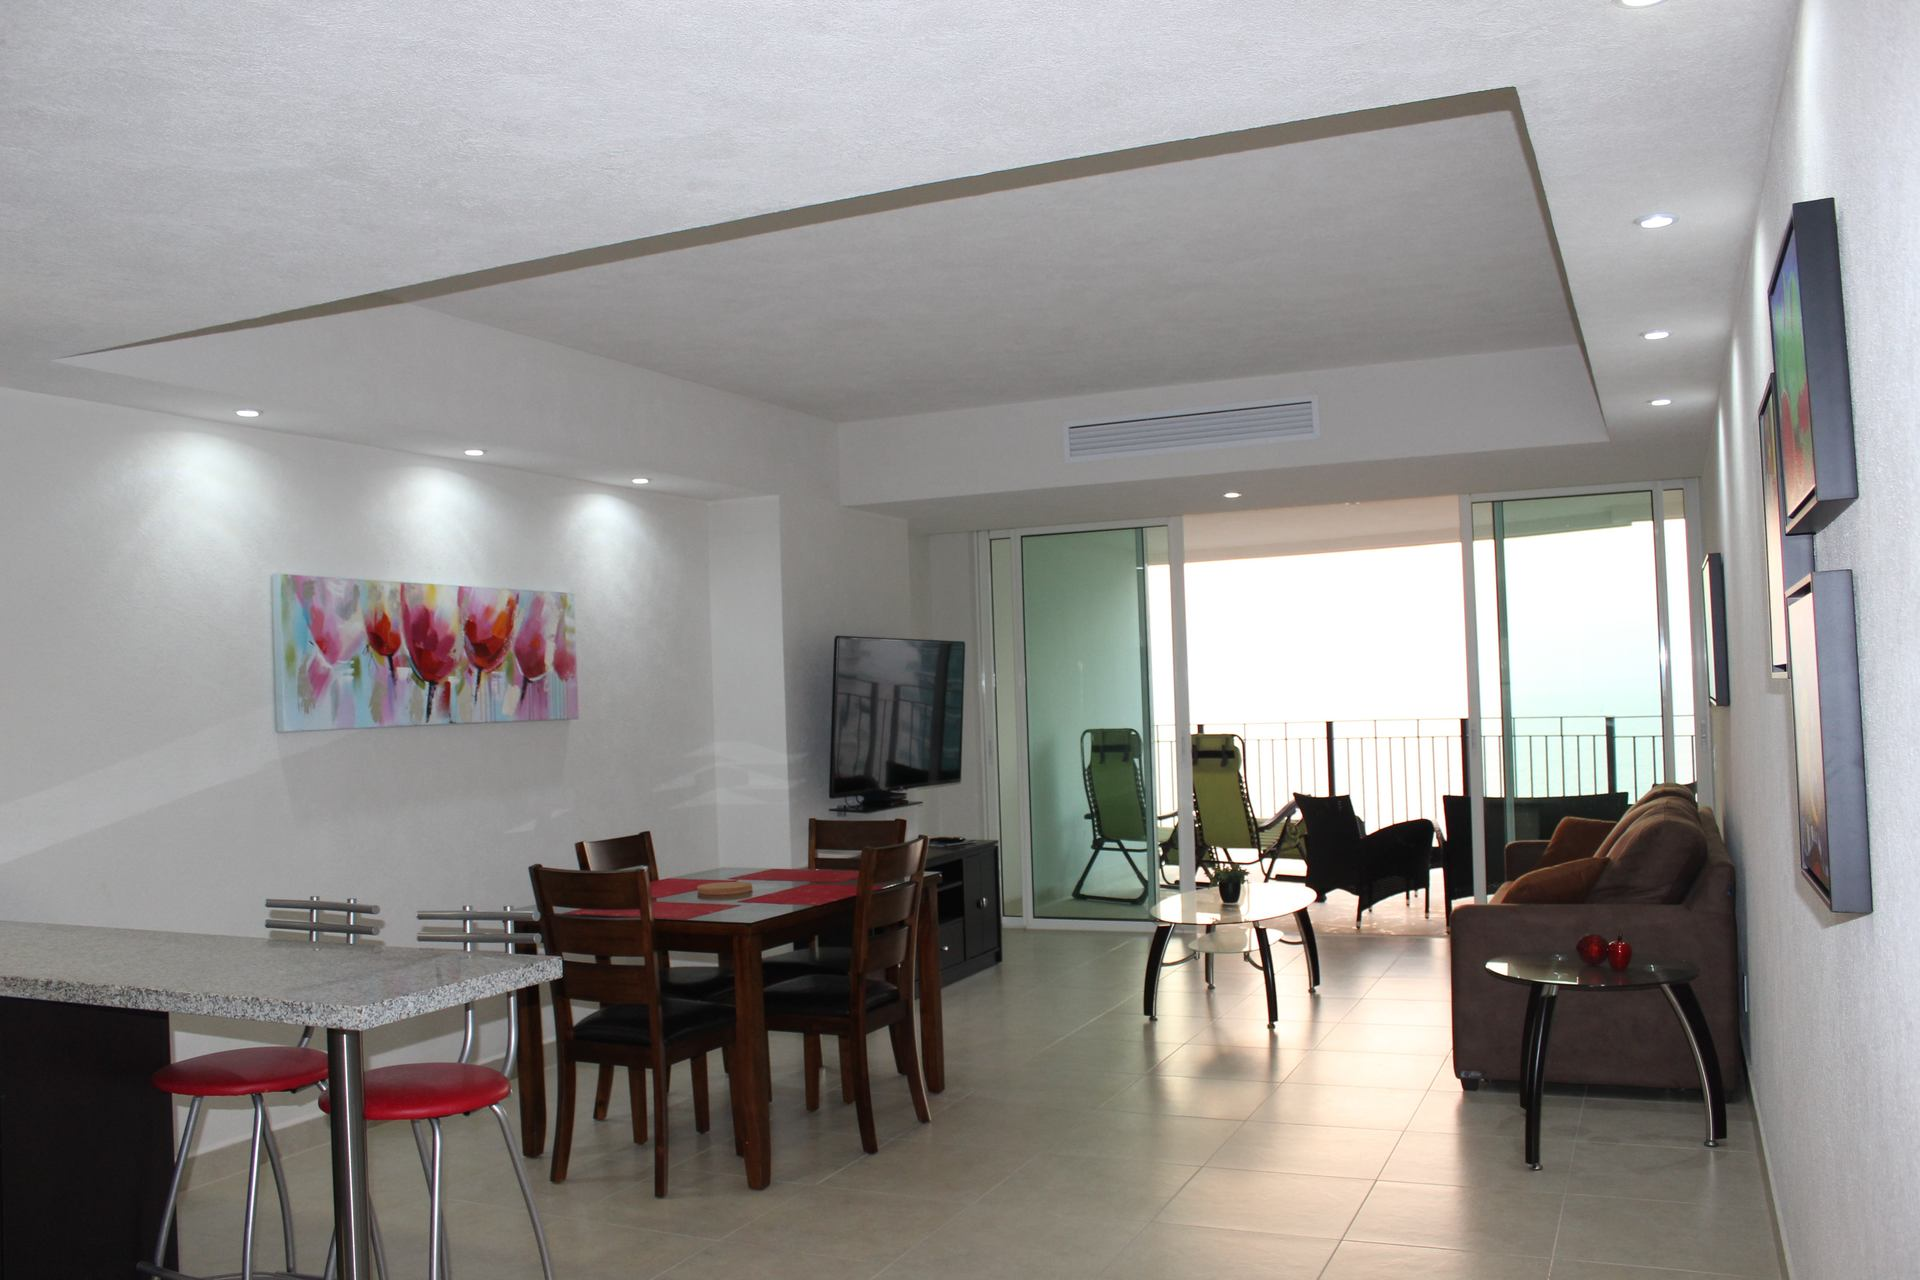 Classy decor of the living spaces in this 1 bedroom vacation condo rental in Grand Venetian Puerto Vallarta